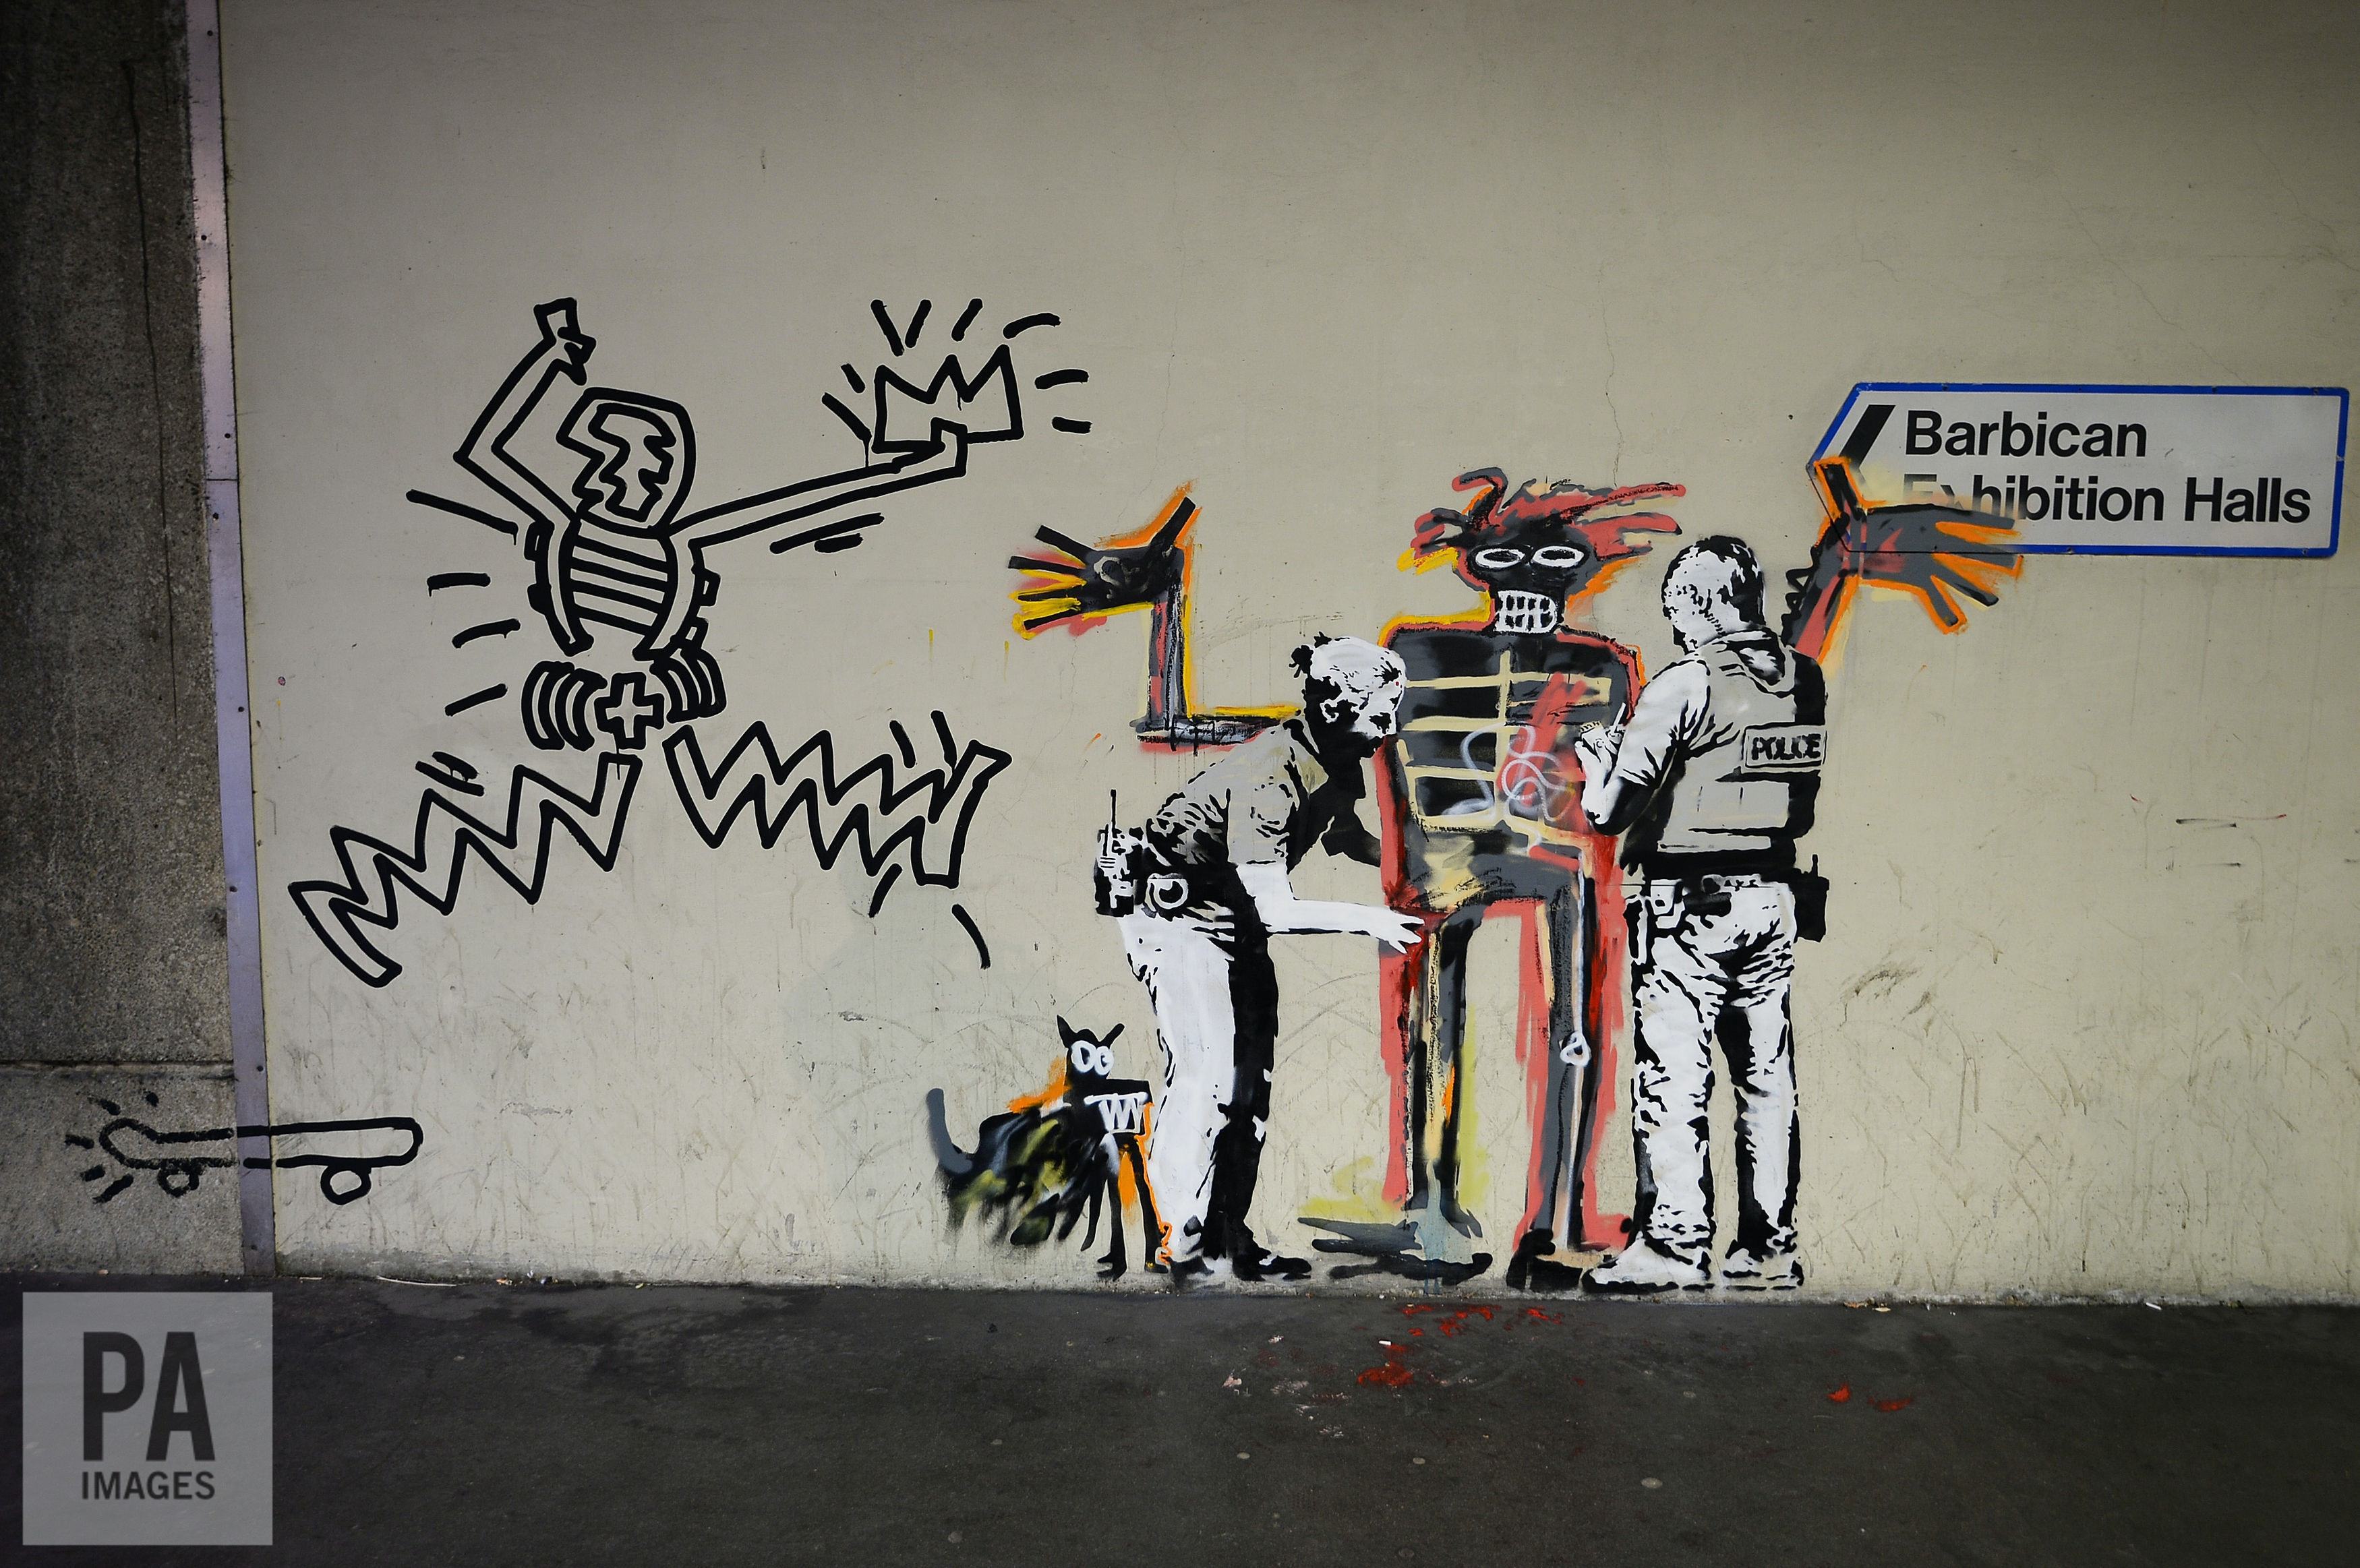 Banksy strikes again: Basquiat, graffiti, and the issue of copyright law